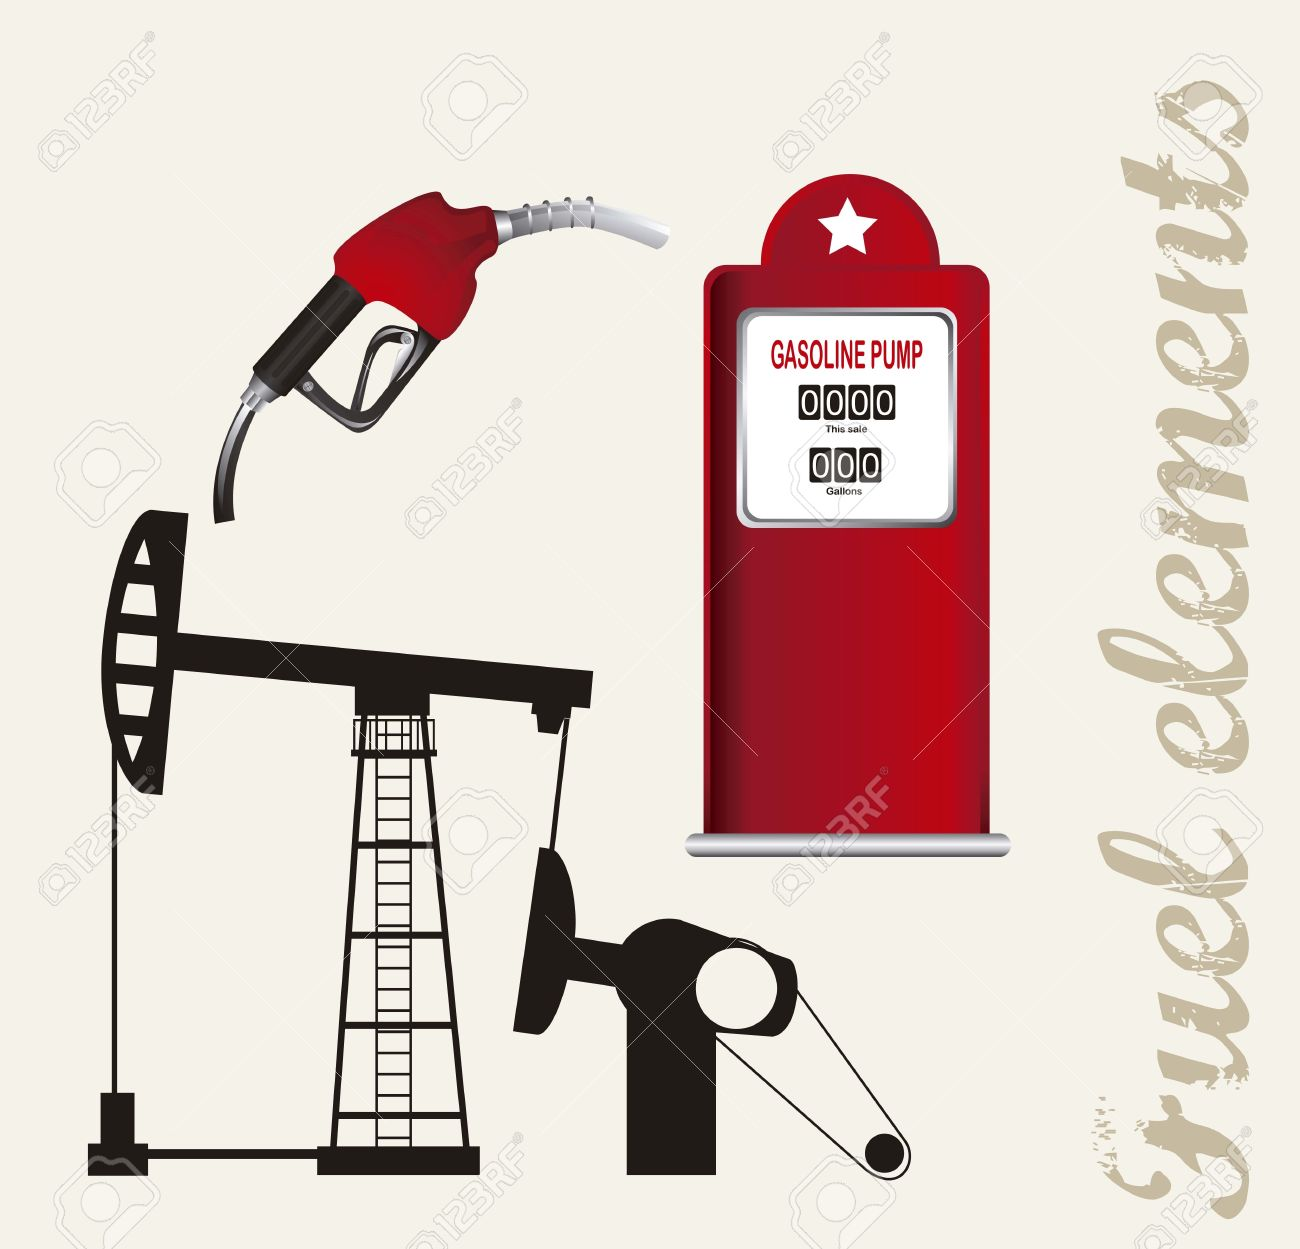 Silhouette Oil Pump With Fuel Station. Vector Illustration Royalty.